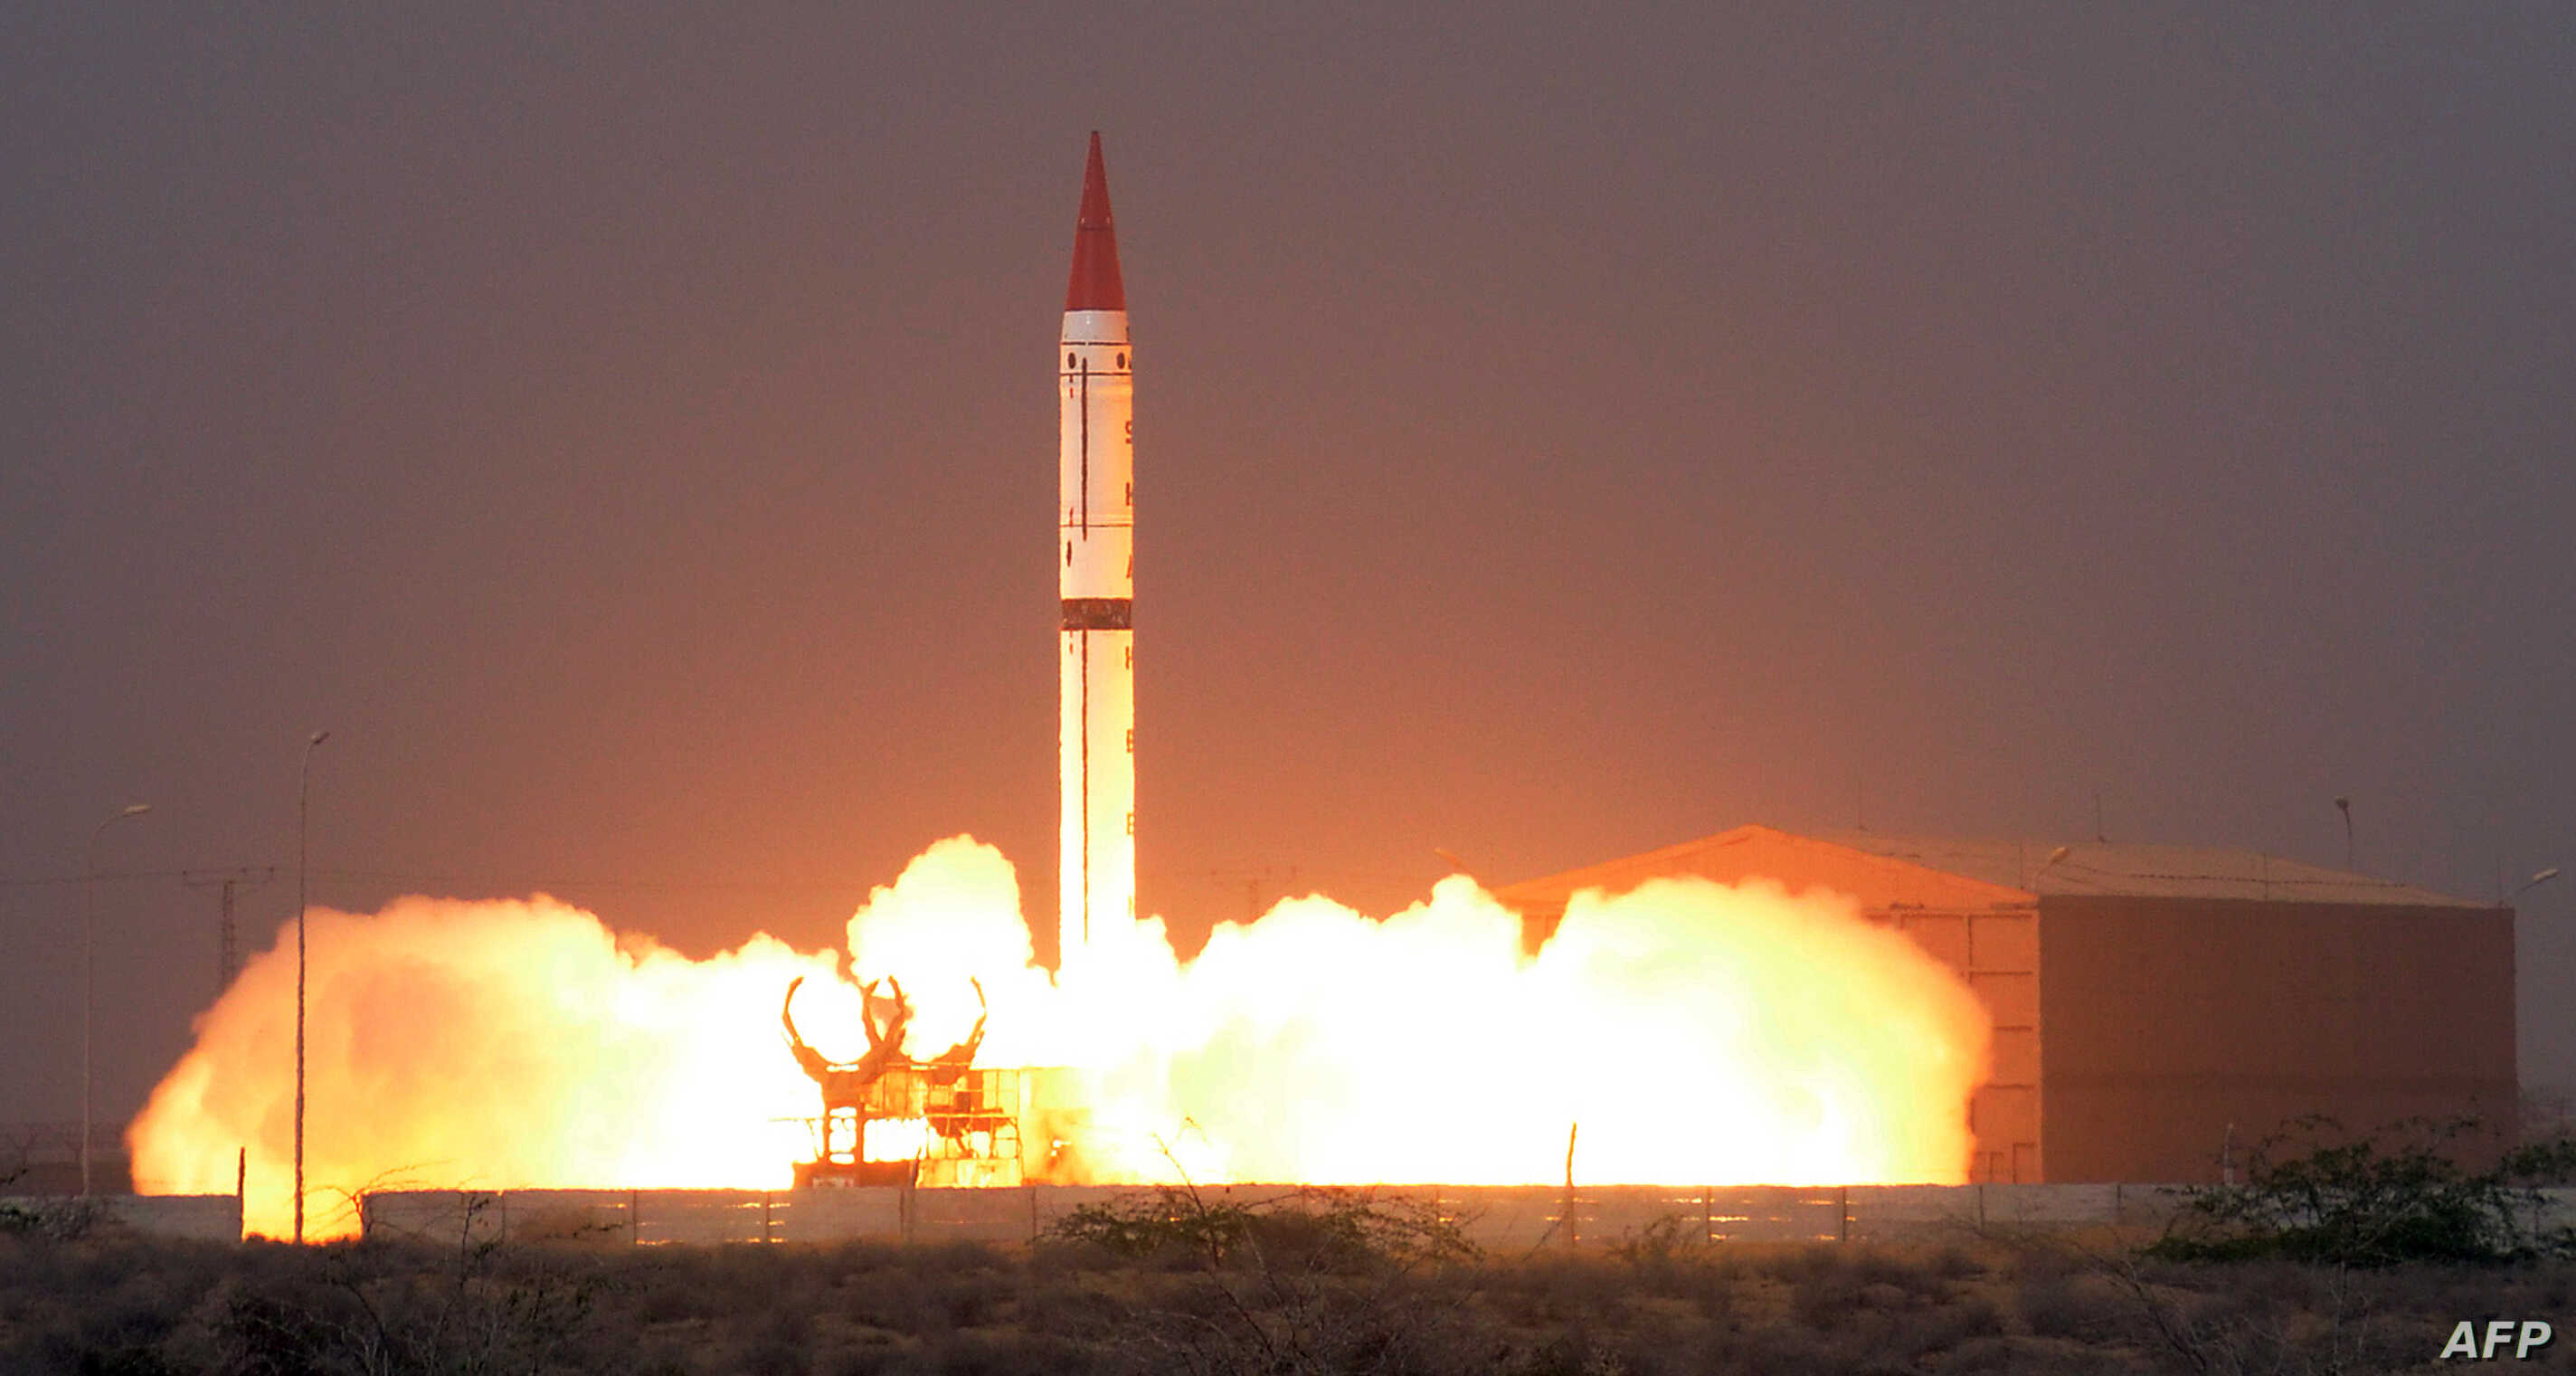 This handout photograph released by Pakistan's Inter Services Public Relations (ISPR) on Dec. 11, 2015, shows a Shaheen III surface-to-surface ballistic missile launching from an undisclosed location in Pakistan.